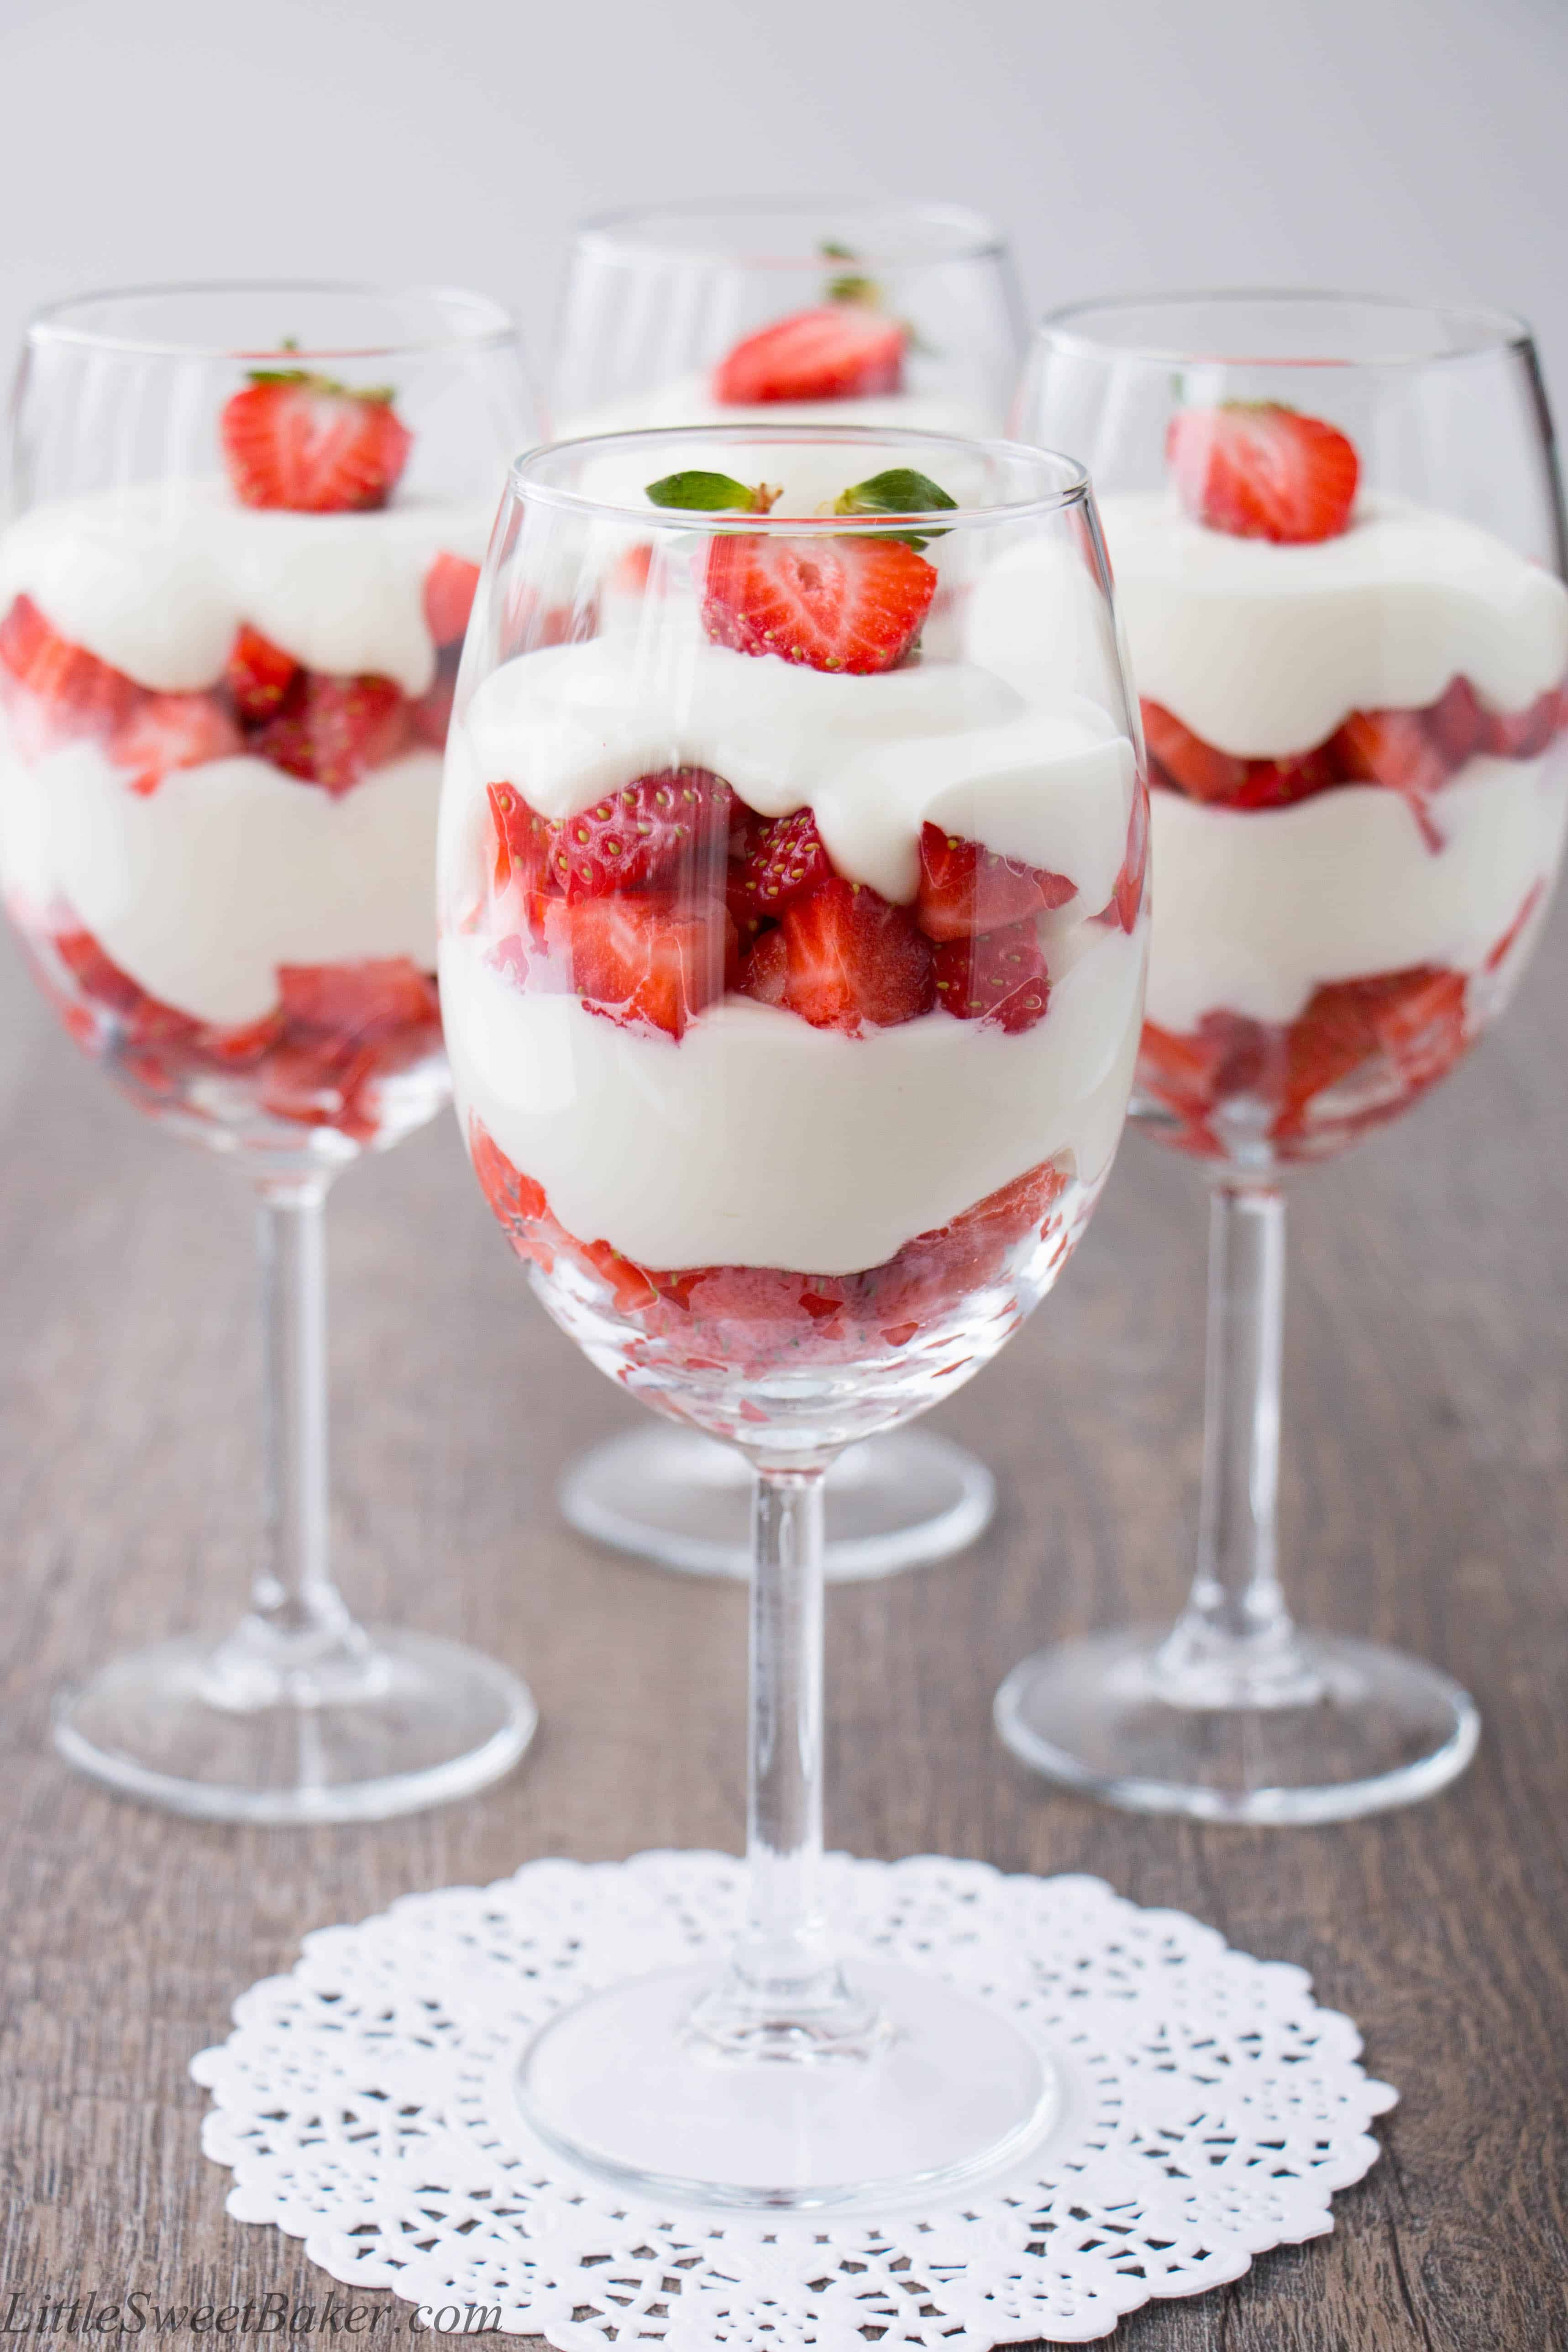 Strawberry White Chocolate Mousse Parfait - Little Sweet Baker